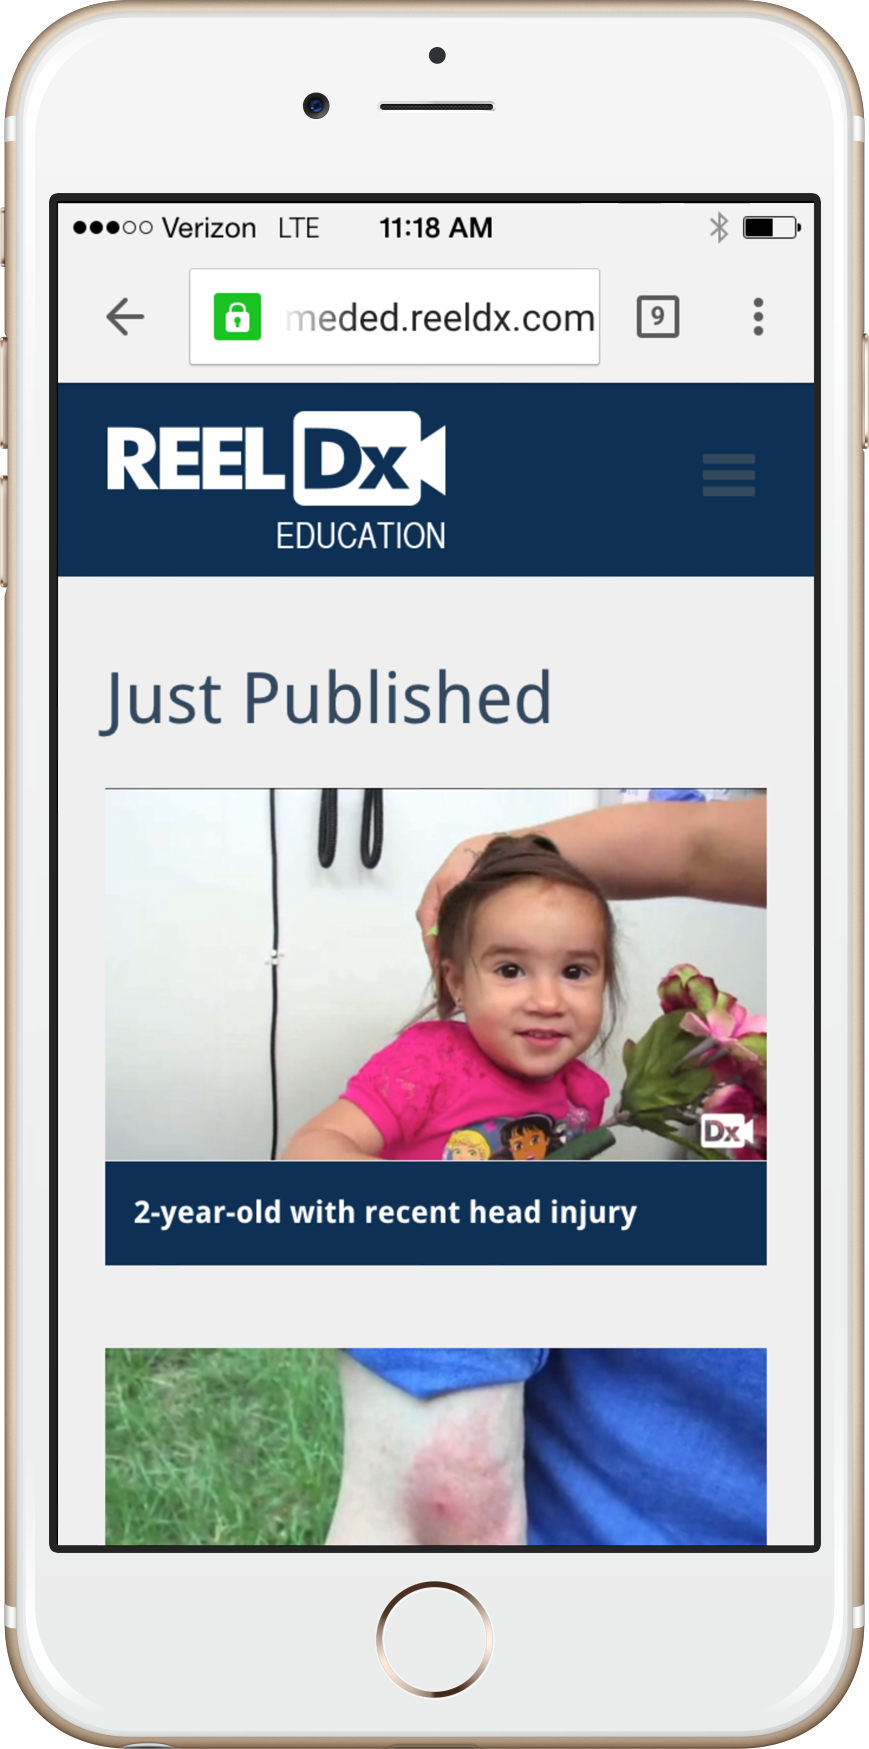 ReelDx website displayed on an iPhone